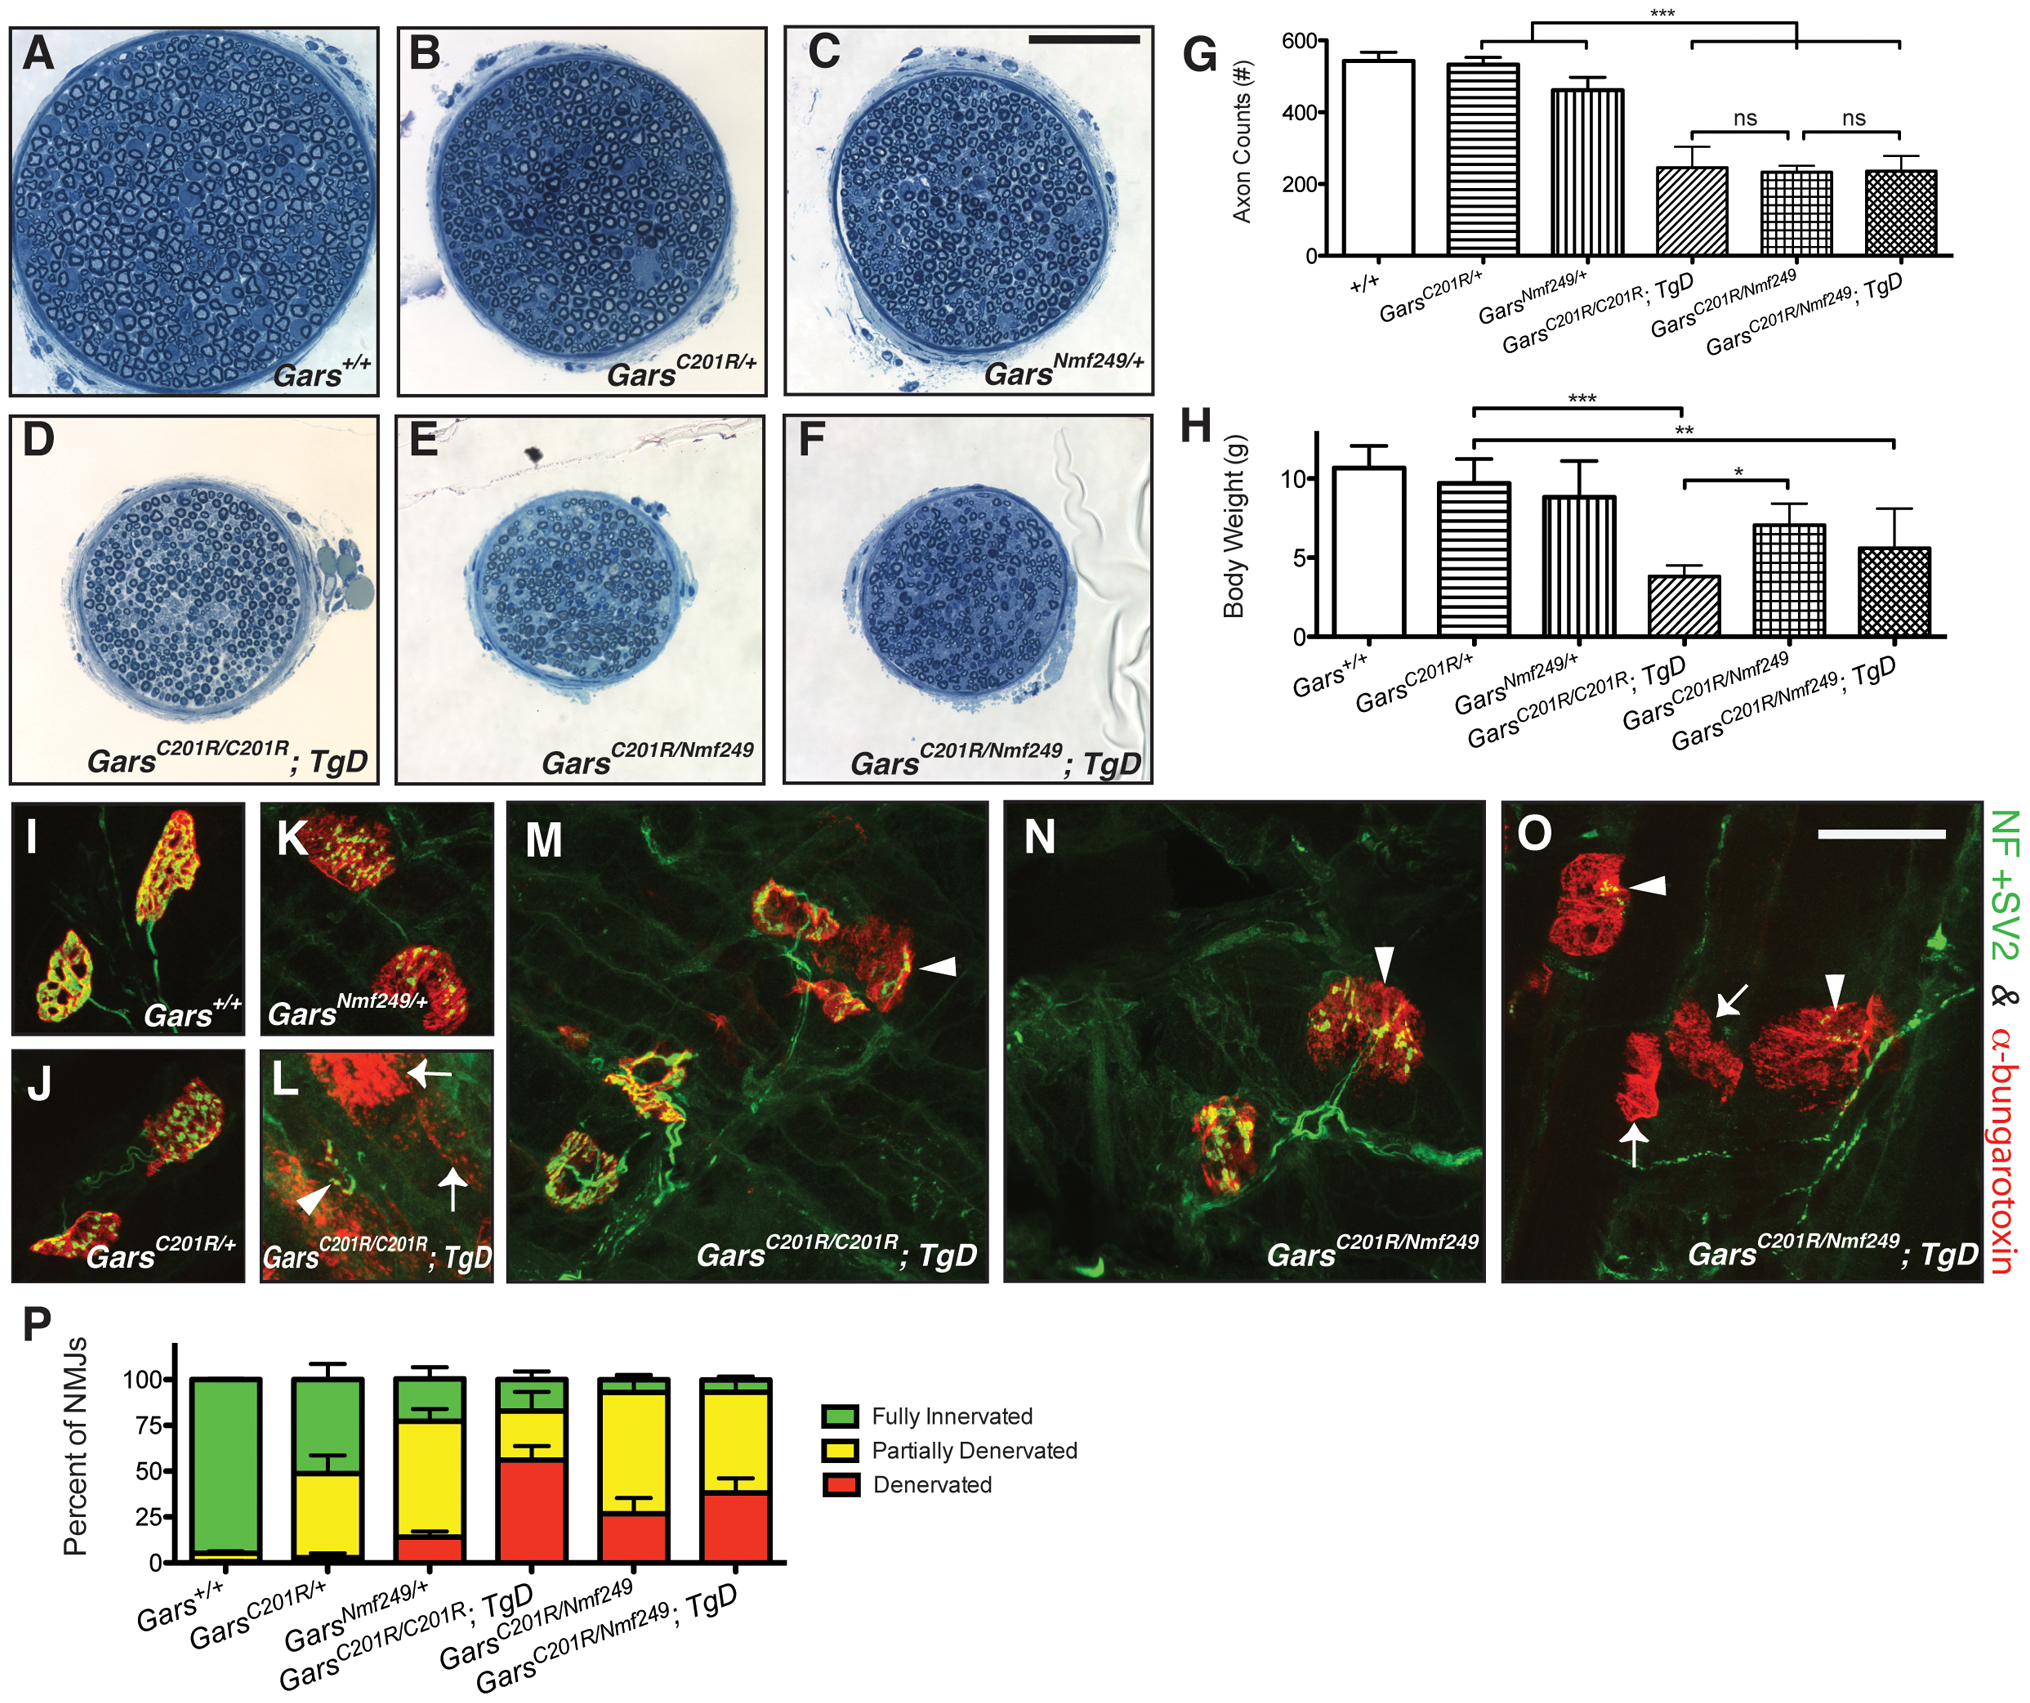 Increased dosage of mutant <i>Gars</i> increases the severity of neuropathy, but wild-type over-expression only improves viability in homozygous <i>C201R</i> mice.